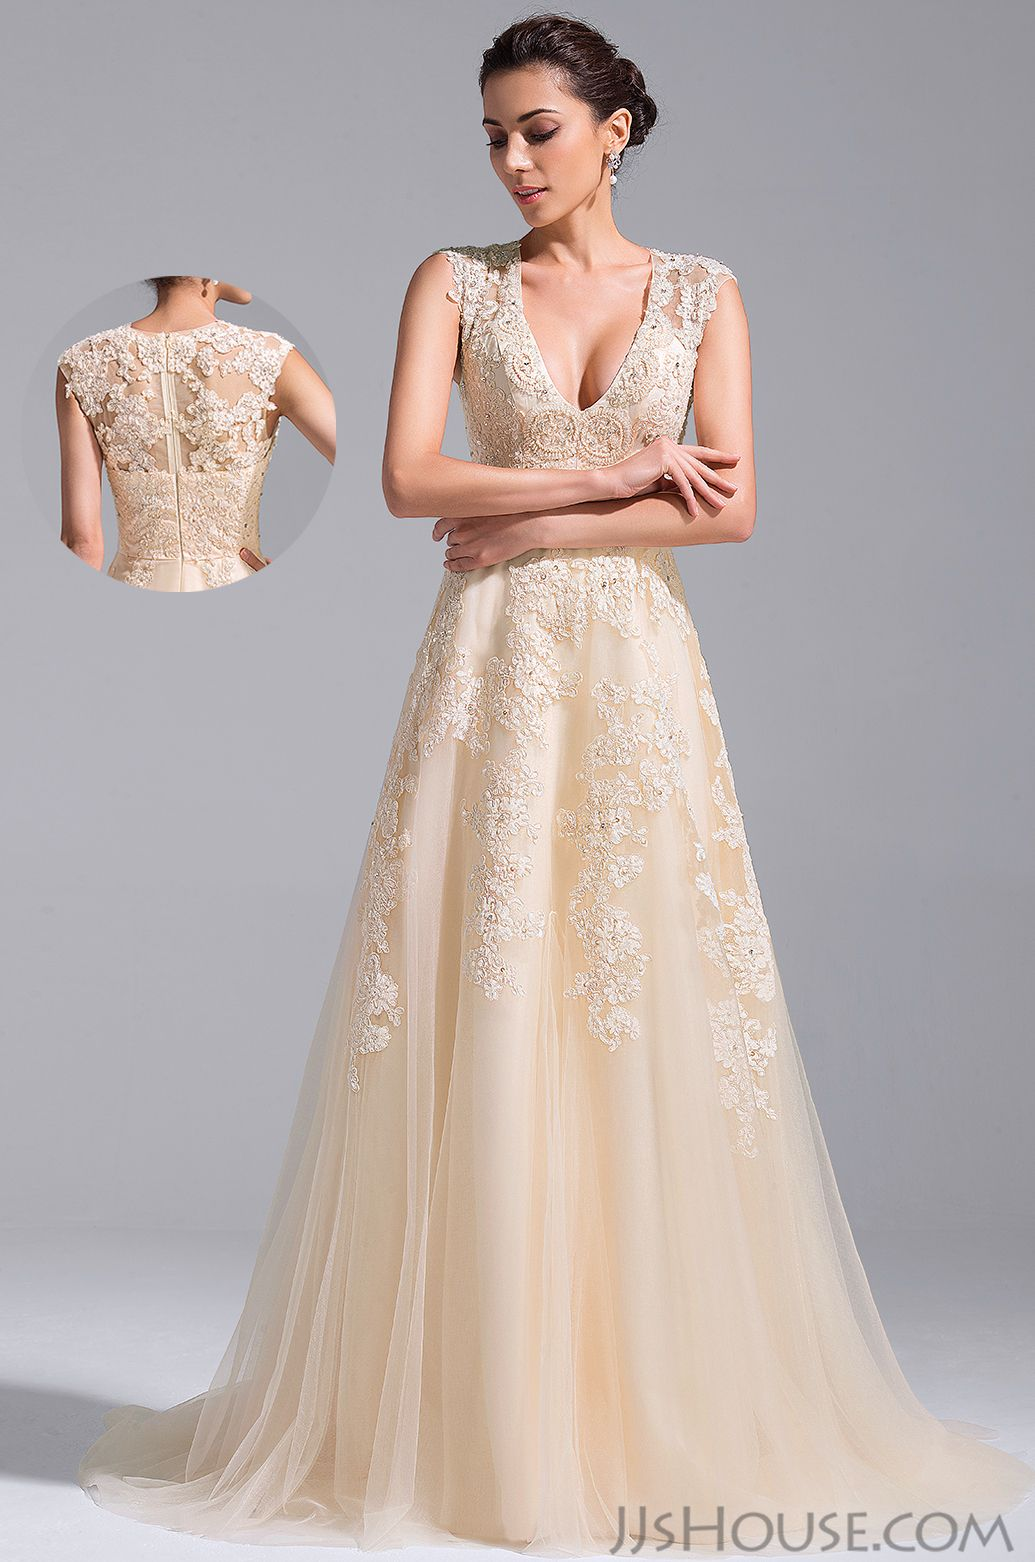 The Vneck wedding dress will be perfect for your big day JJsHouse